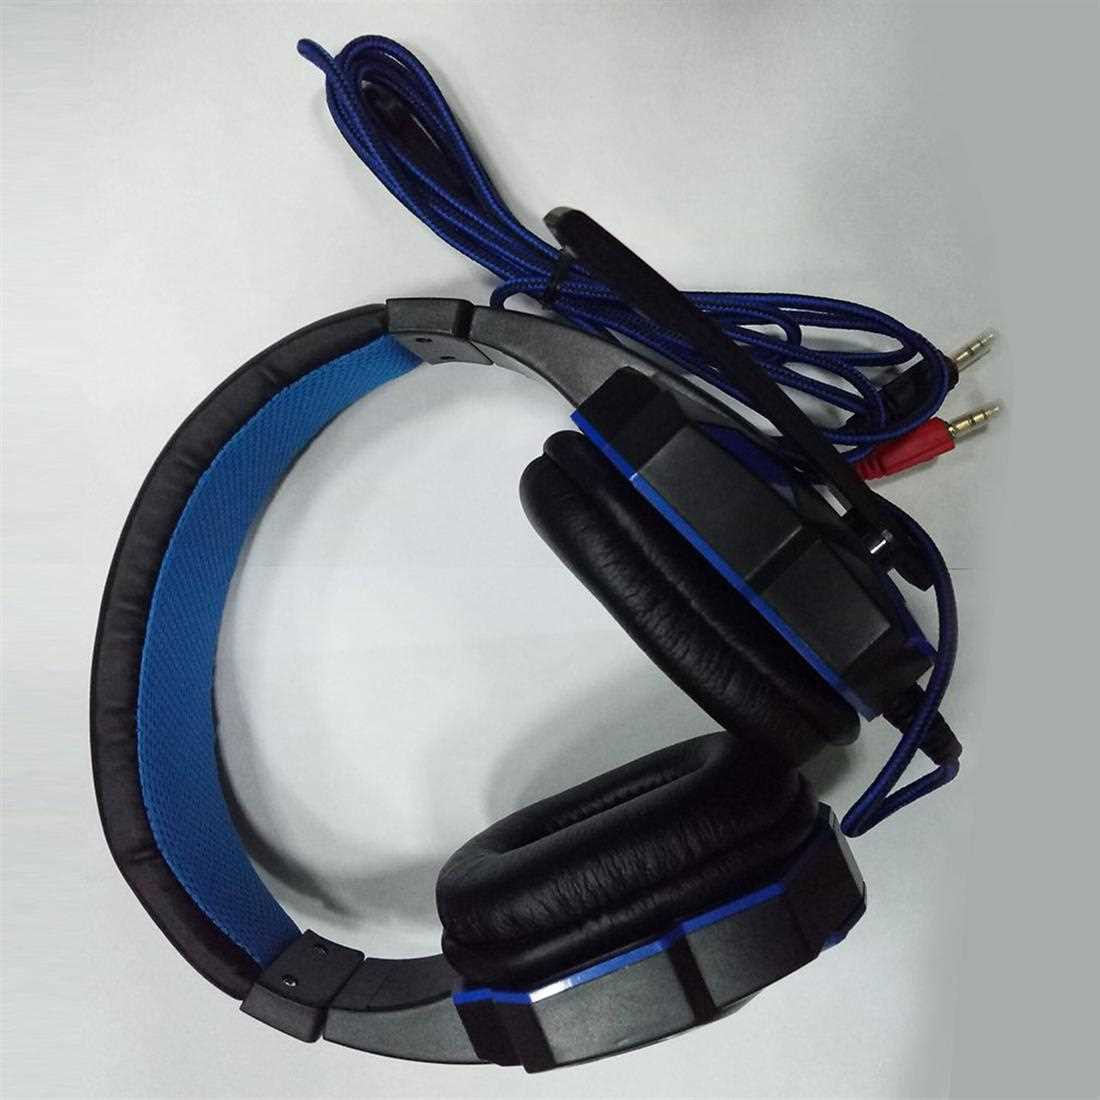 3.5mm Surround Stereo Gaming Headset Headband Headphone with Mic for PC (Blue)